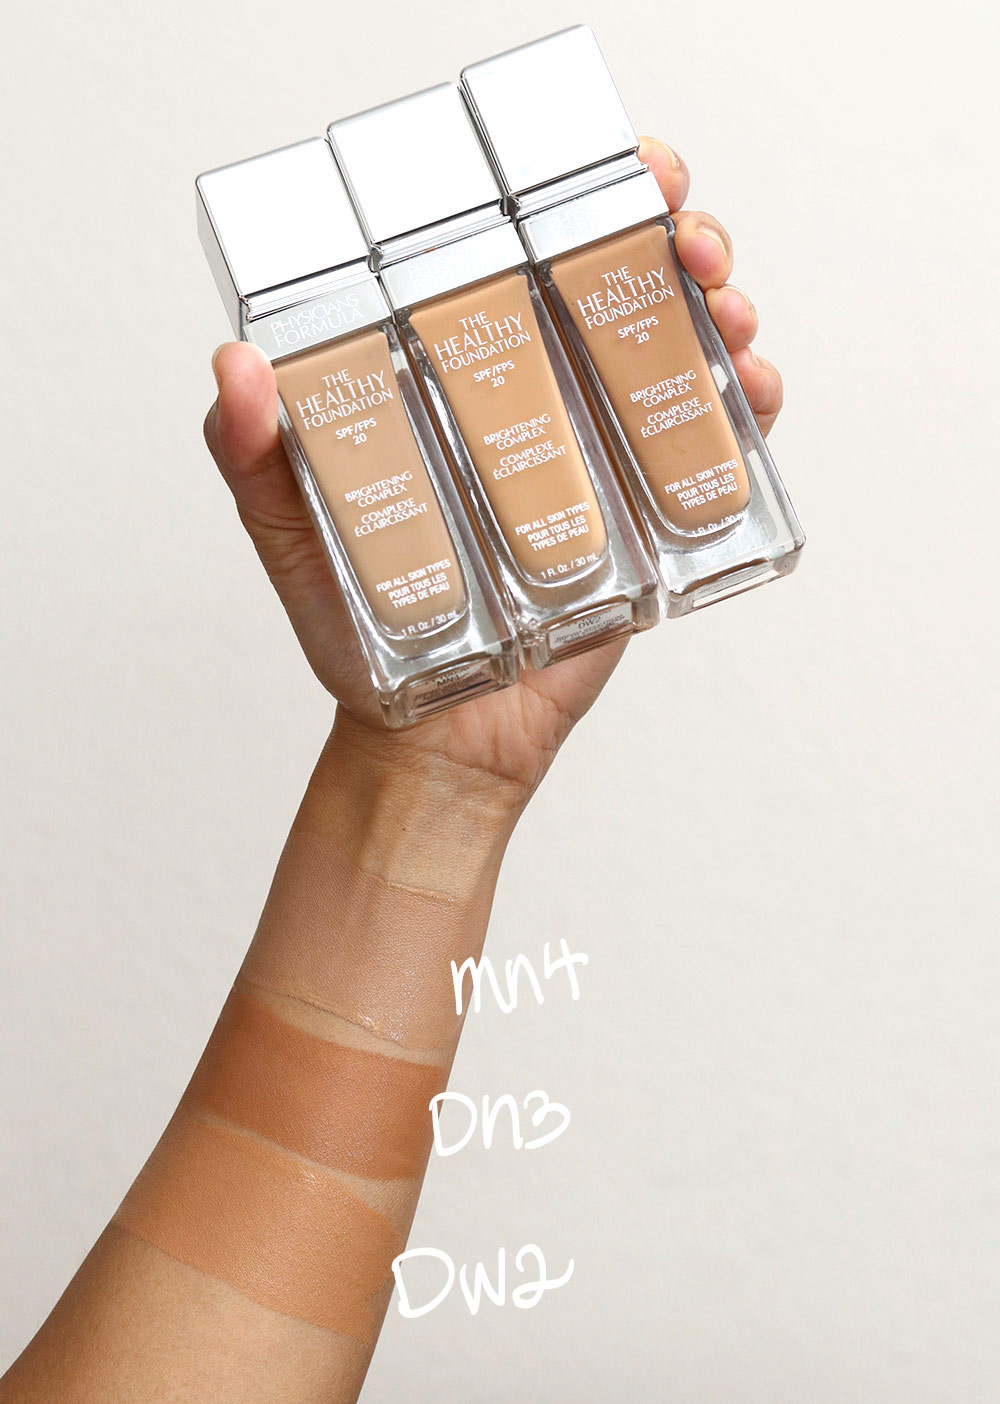 physicians formula the healthy foundation swatches mn4 dn3 dw2